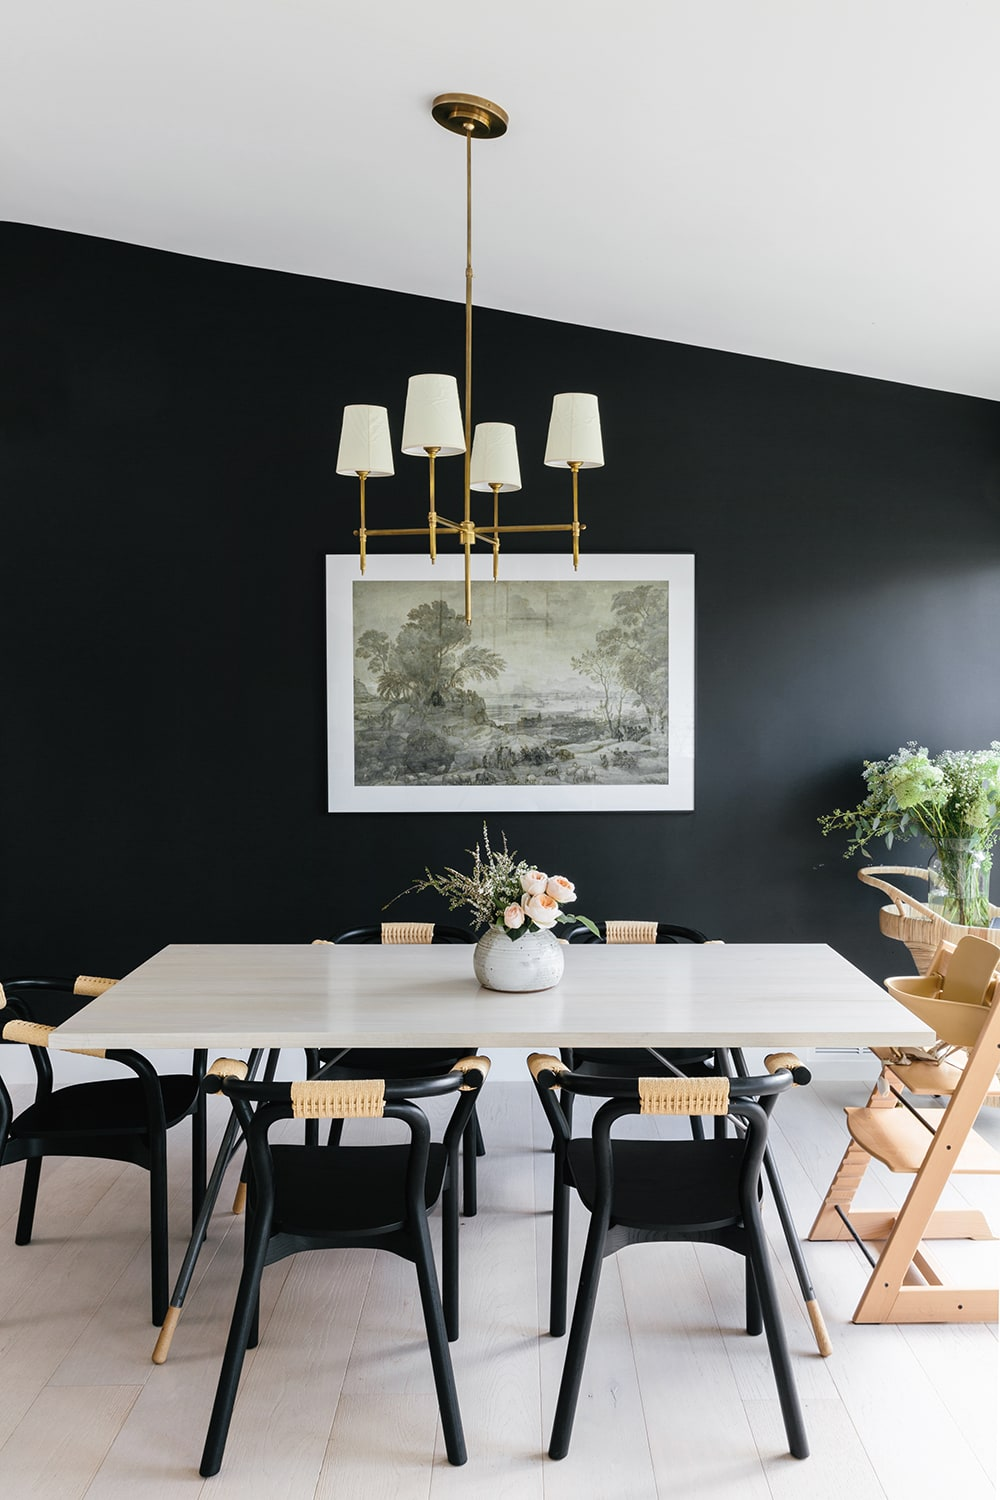 Black Accent Wall Ideas To Make A Bold Statement In Any Room Homelovr